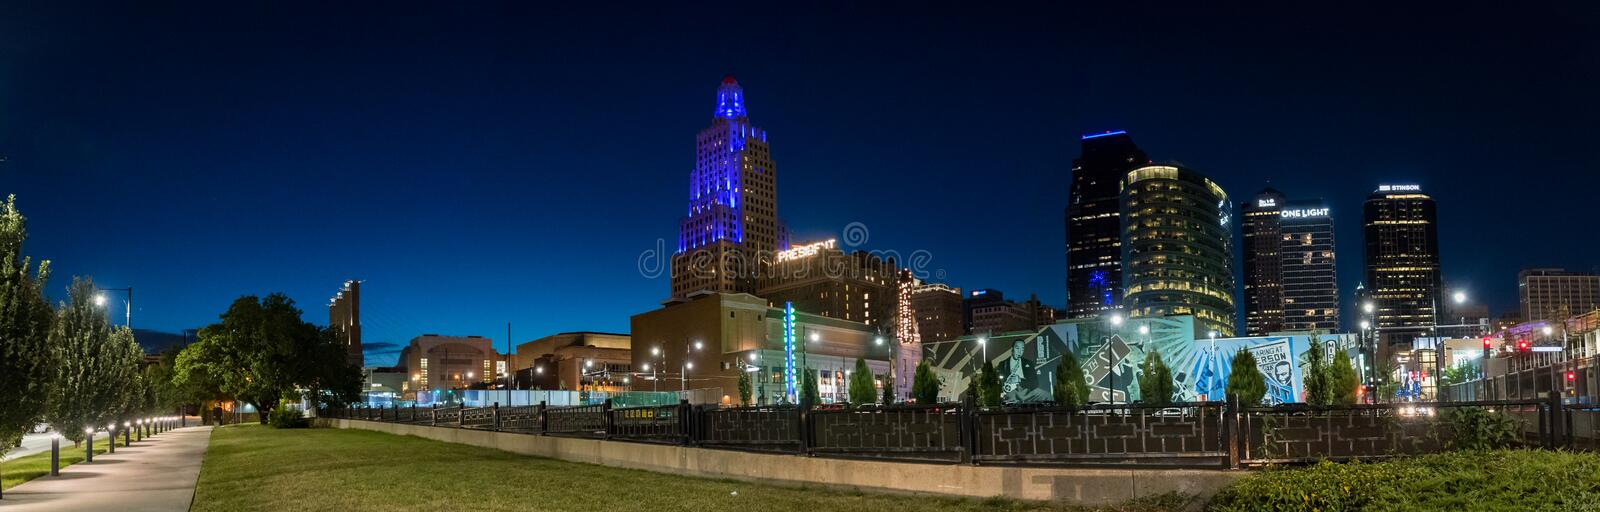 Nighttime view of the power and light district in kansas city download nighttime view of the power and light district in kansas city missouri editorial stock aloadofball Image collections